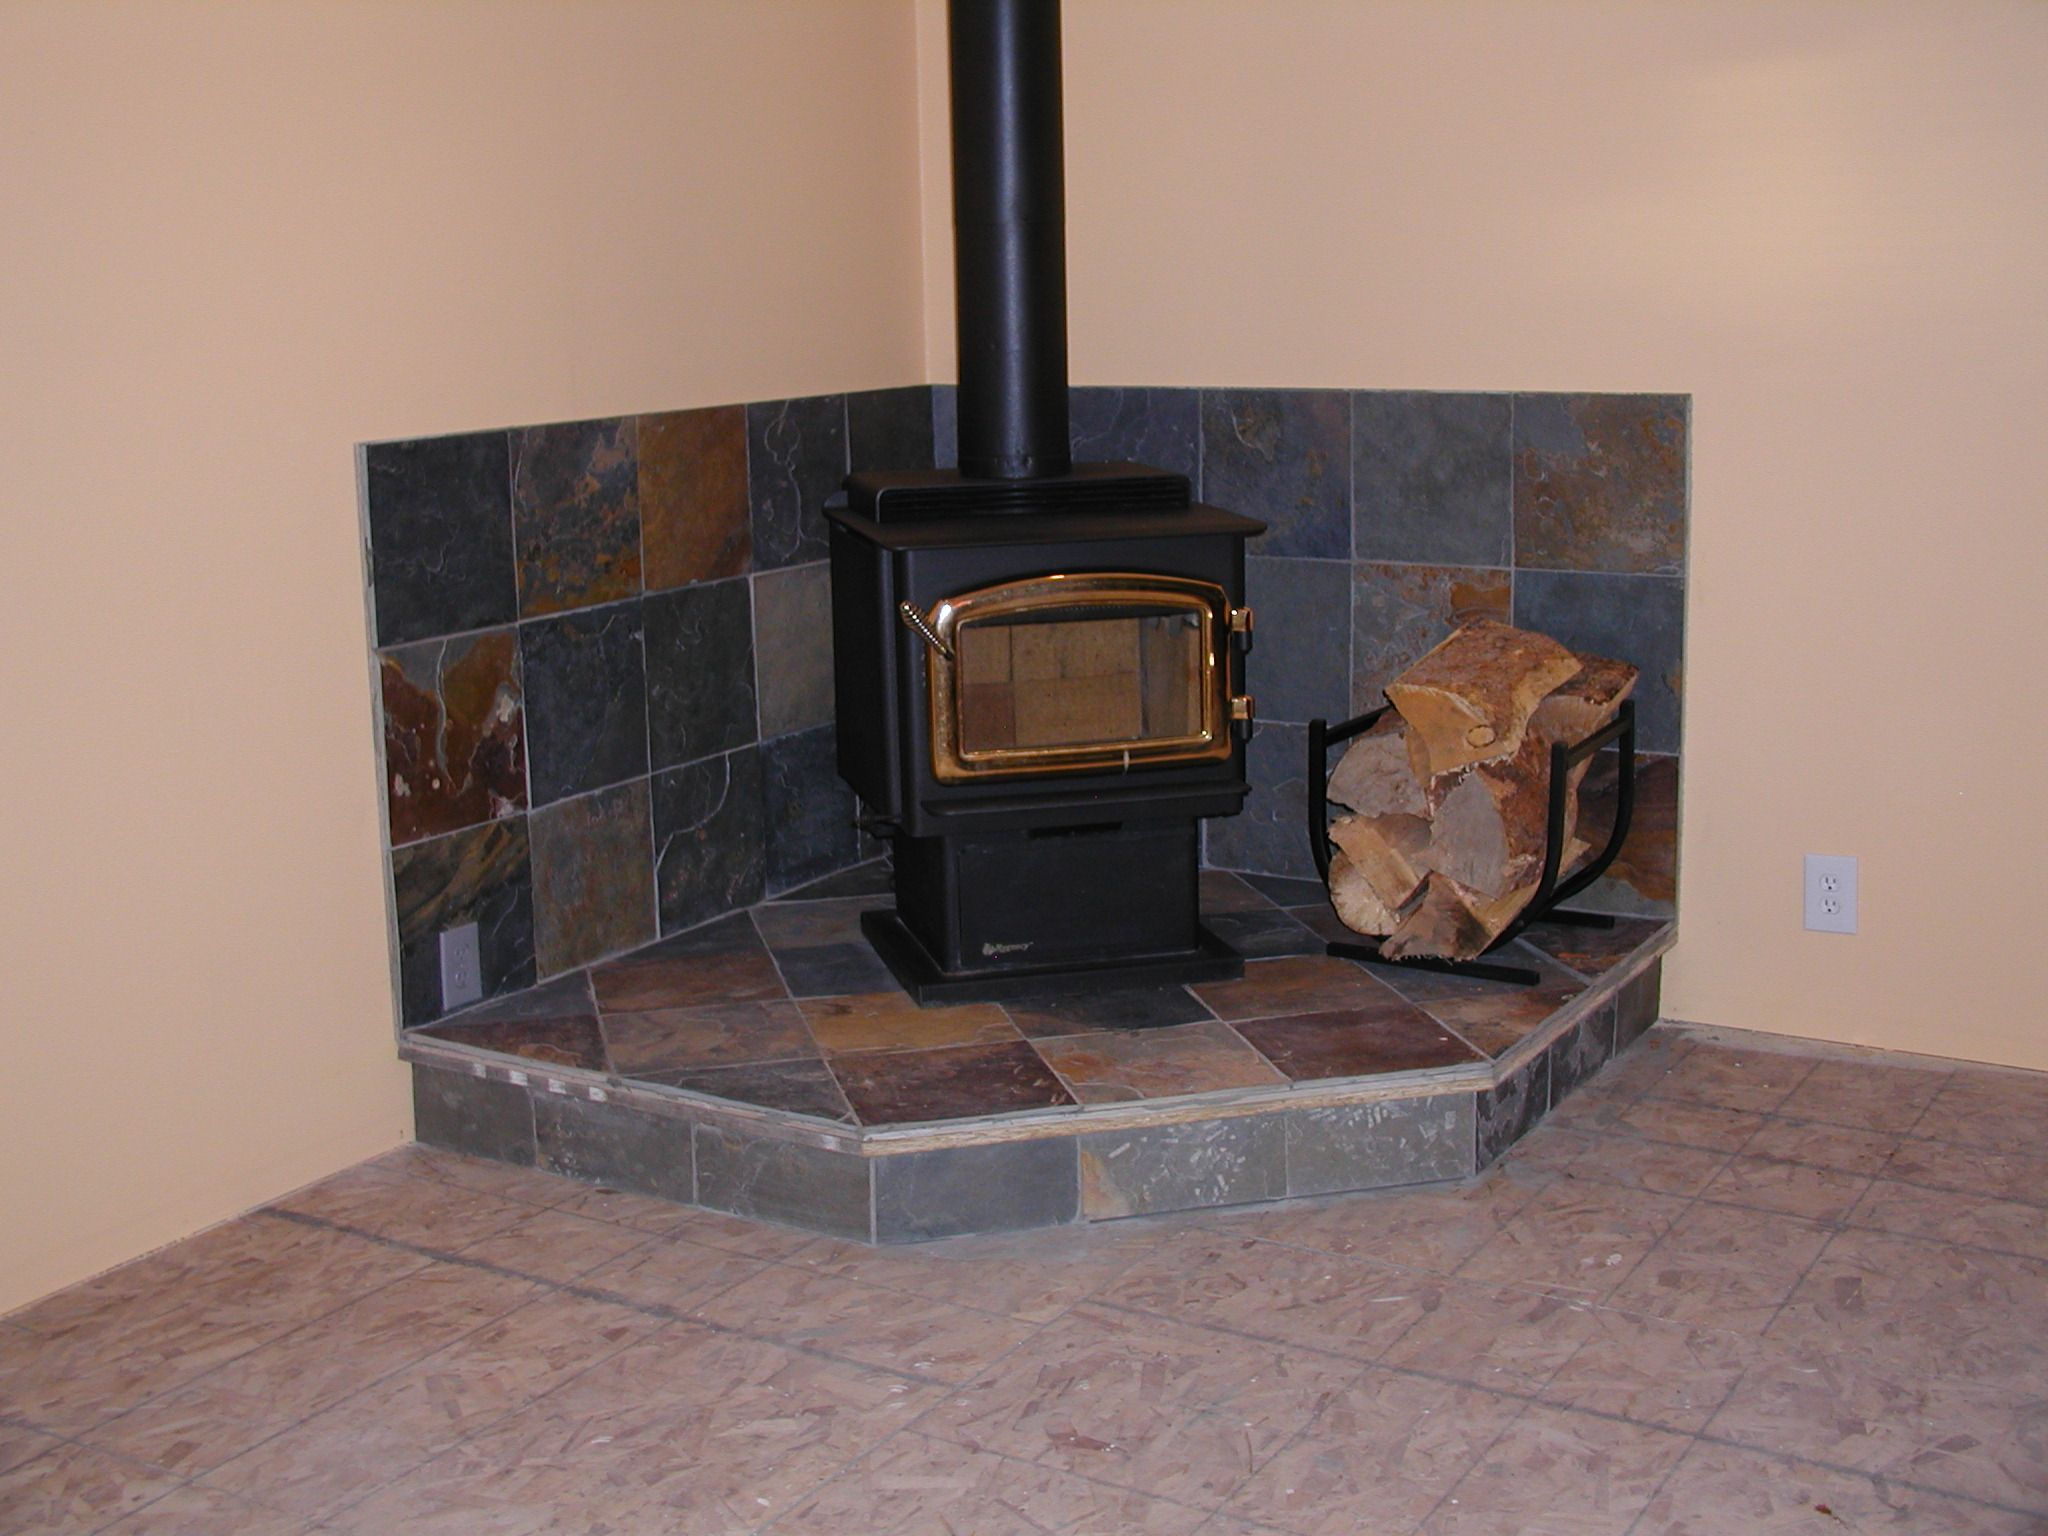 Building A Fireplace Build Fireplace Mantel Fireplace Mantel Design How To Build A